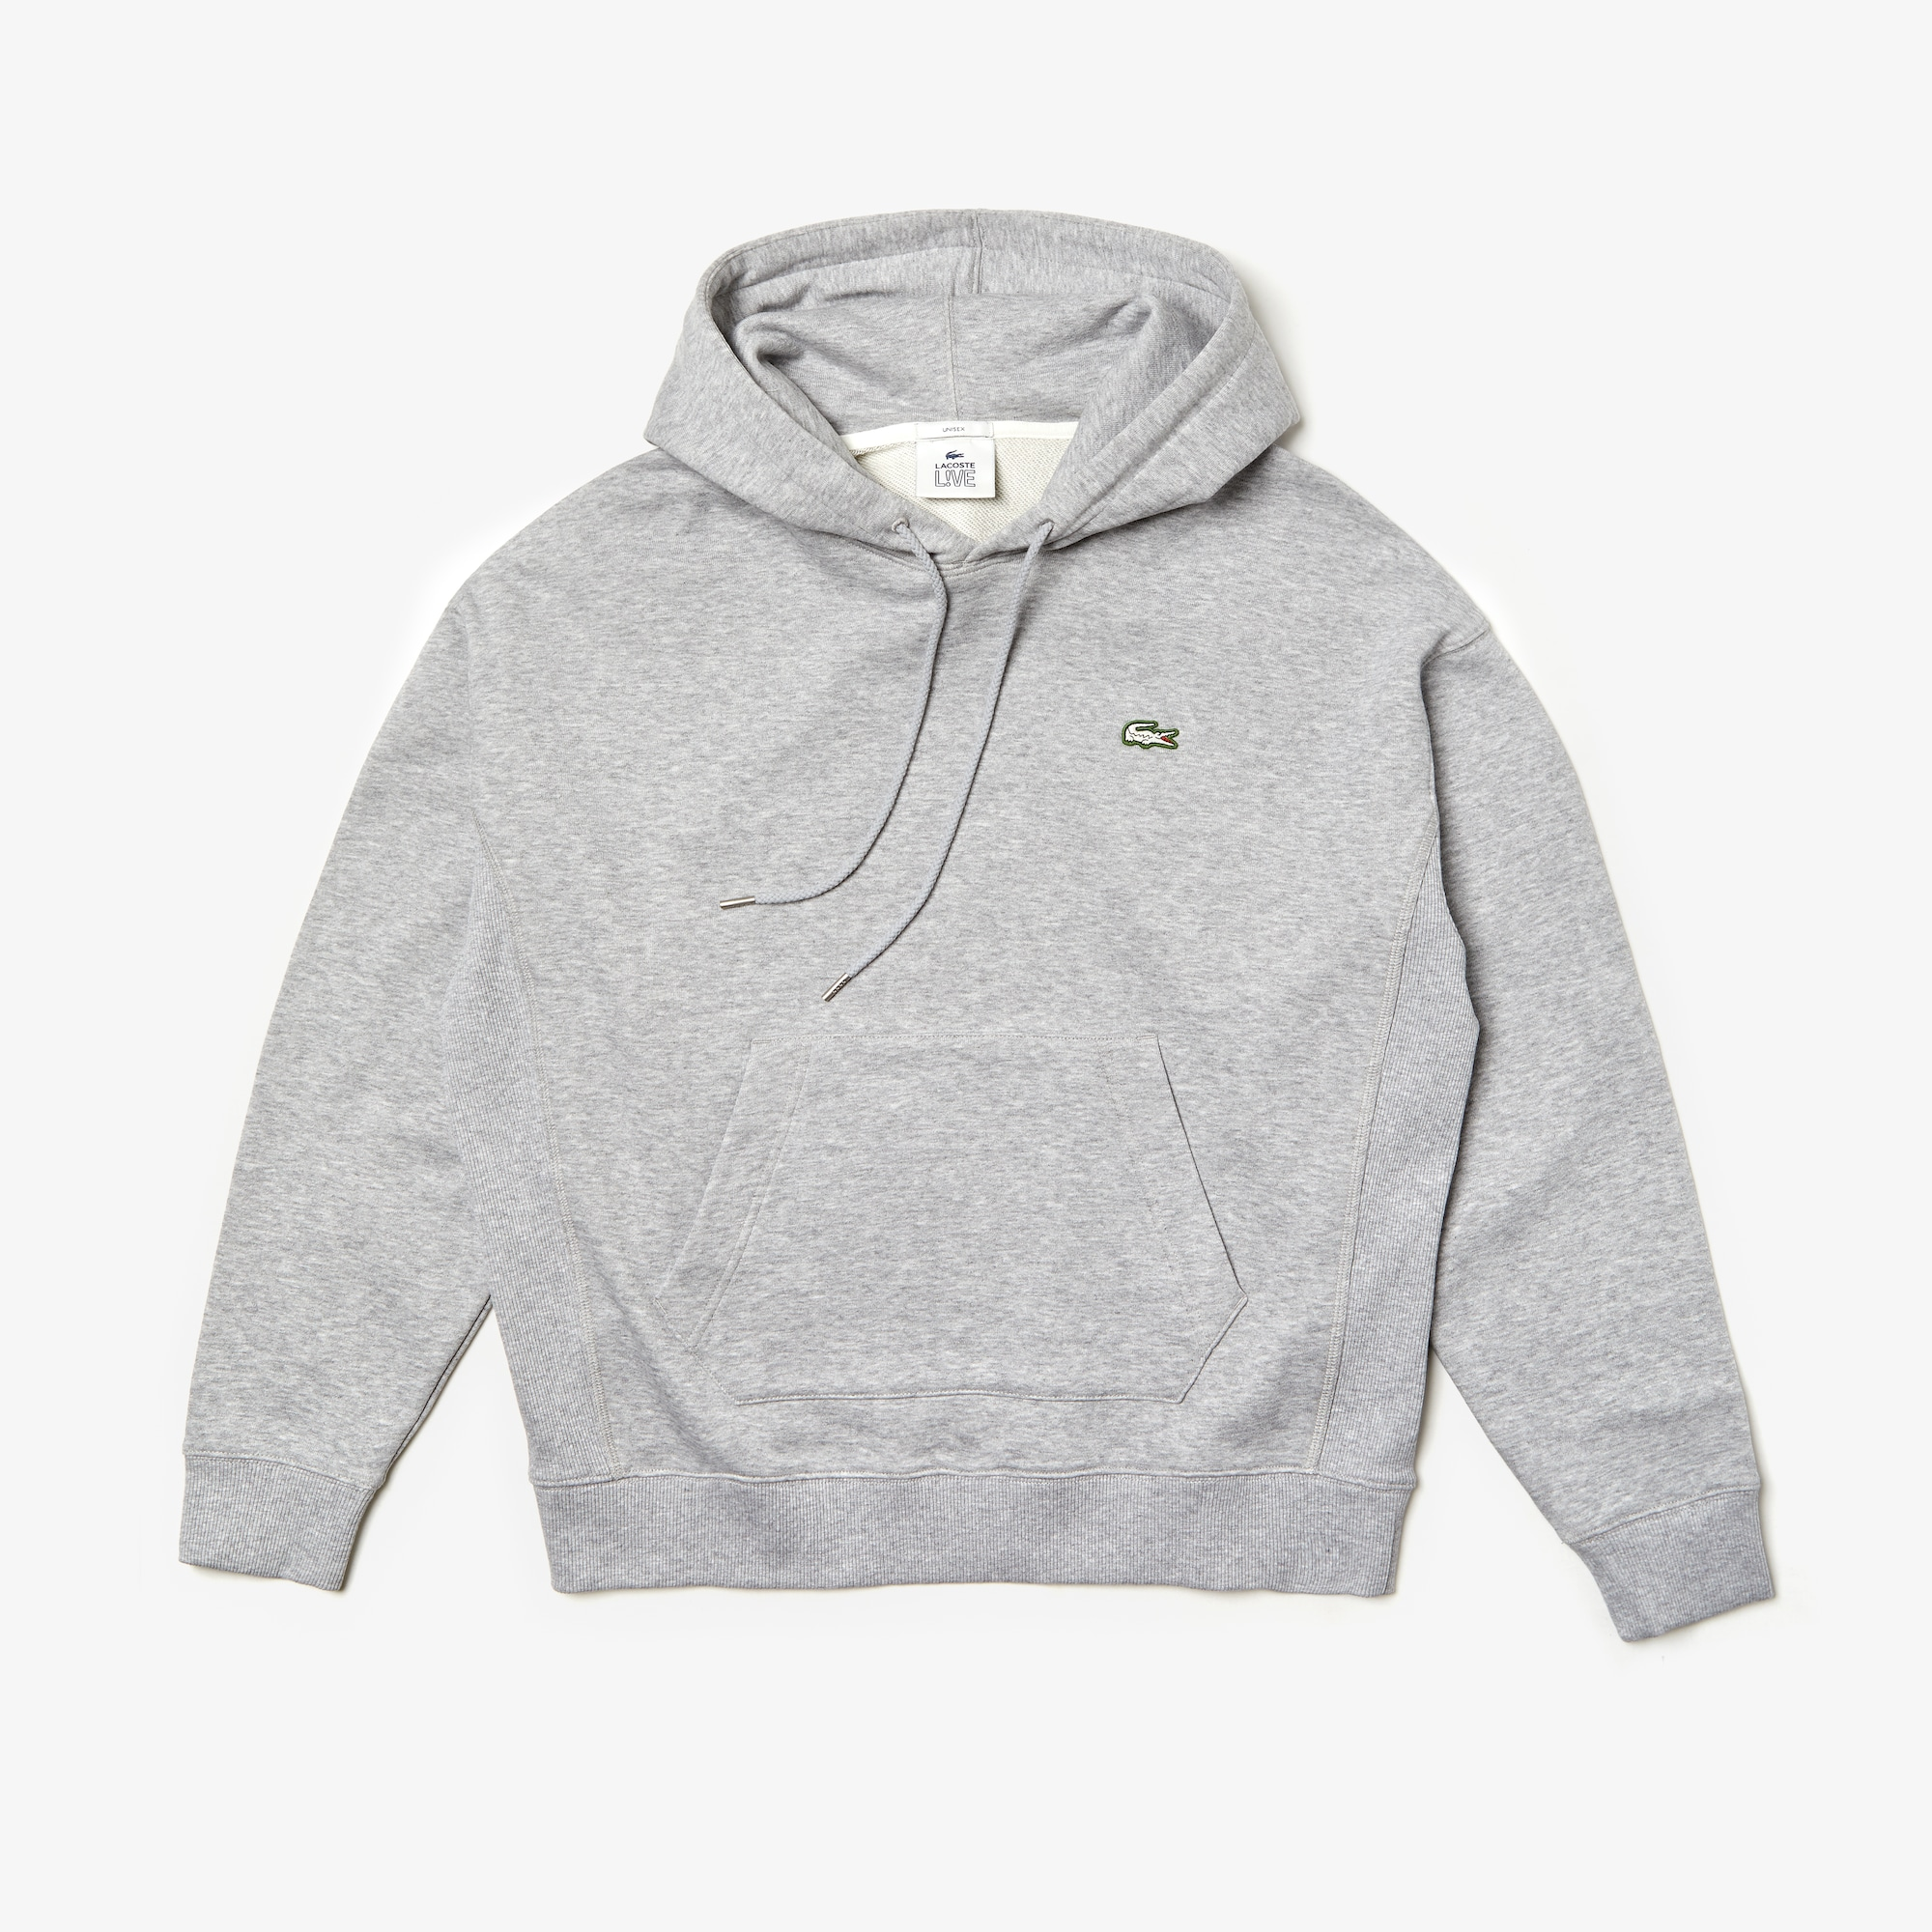 free shipping c14af a86b7 Men's Sweatshirts, Pullovers & Hoodies   Lacoste